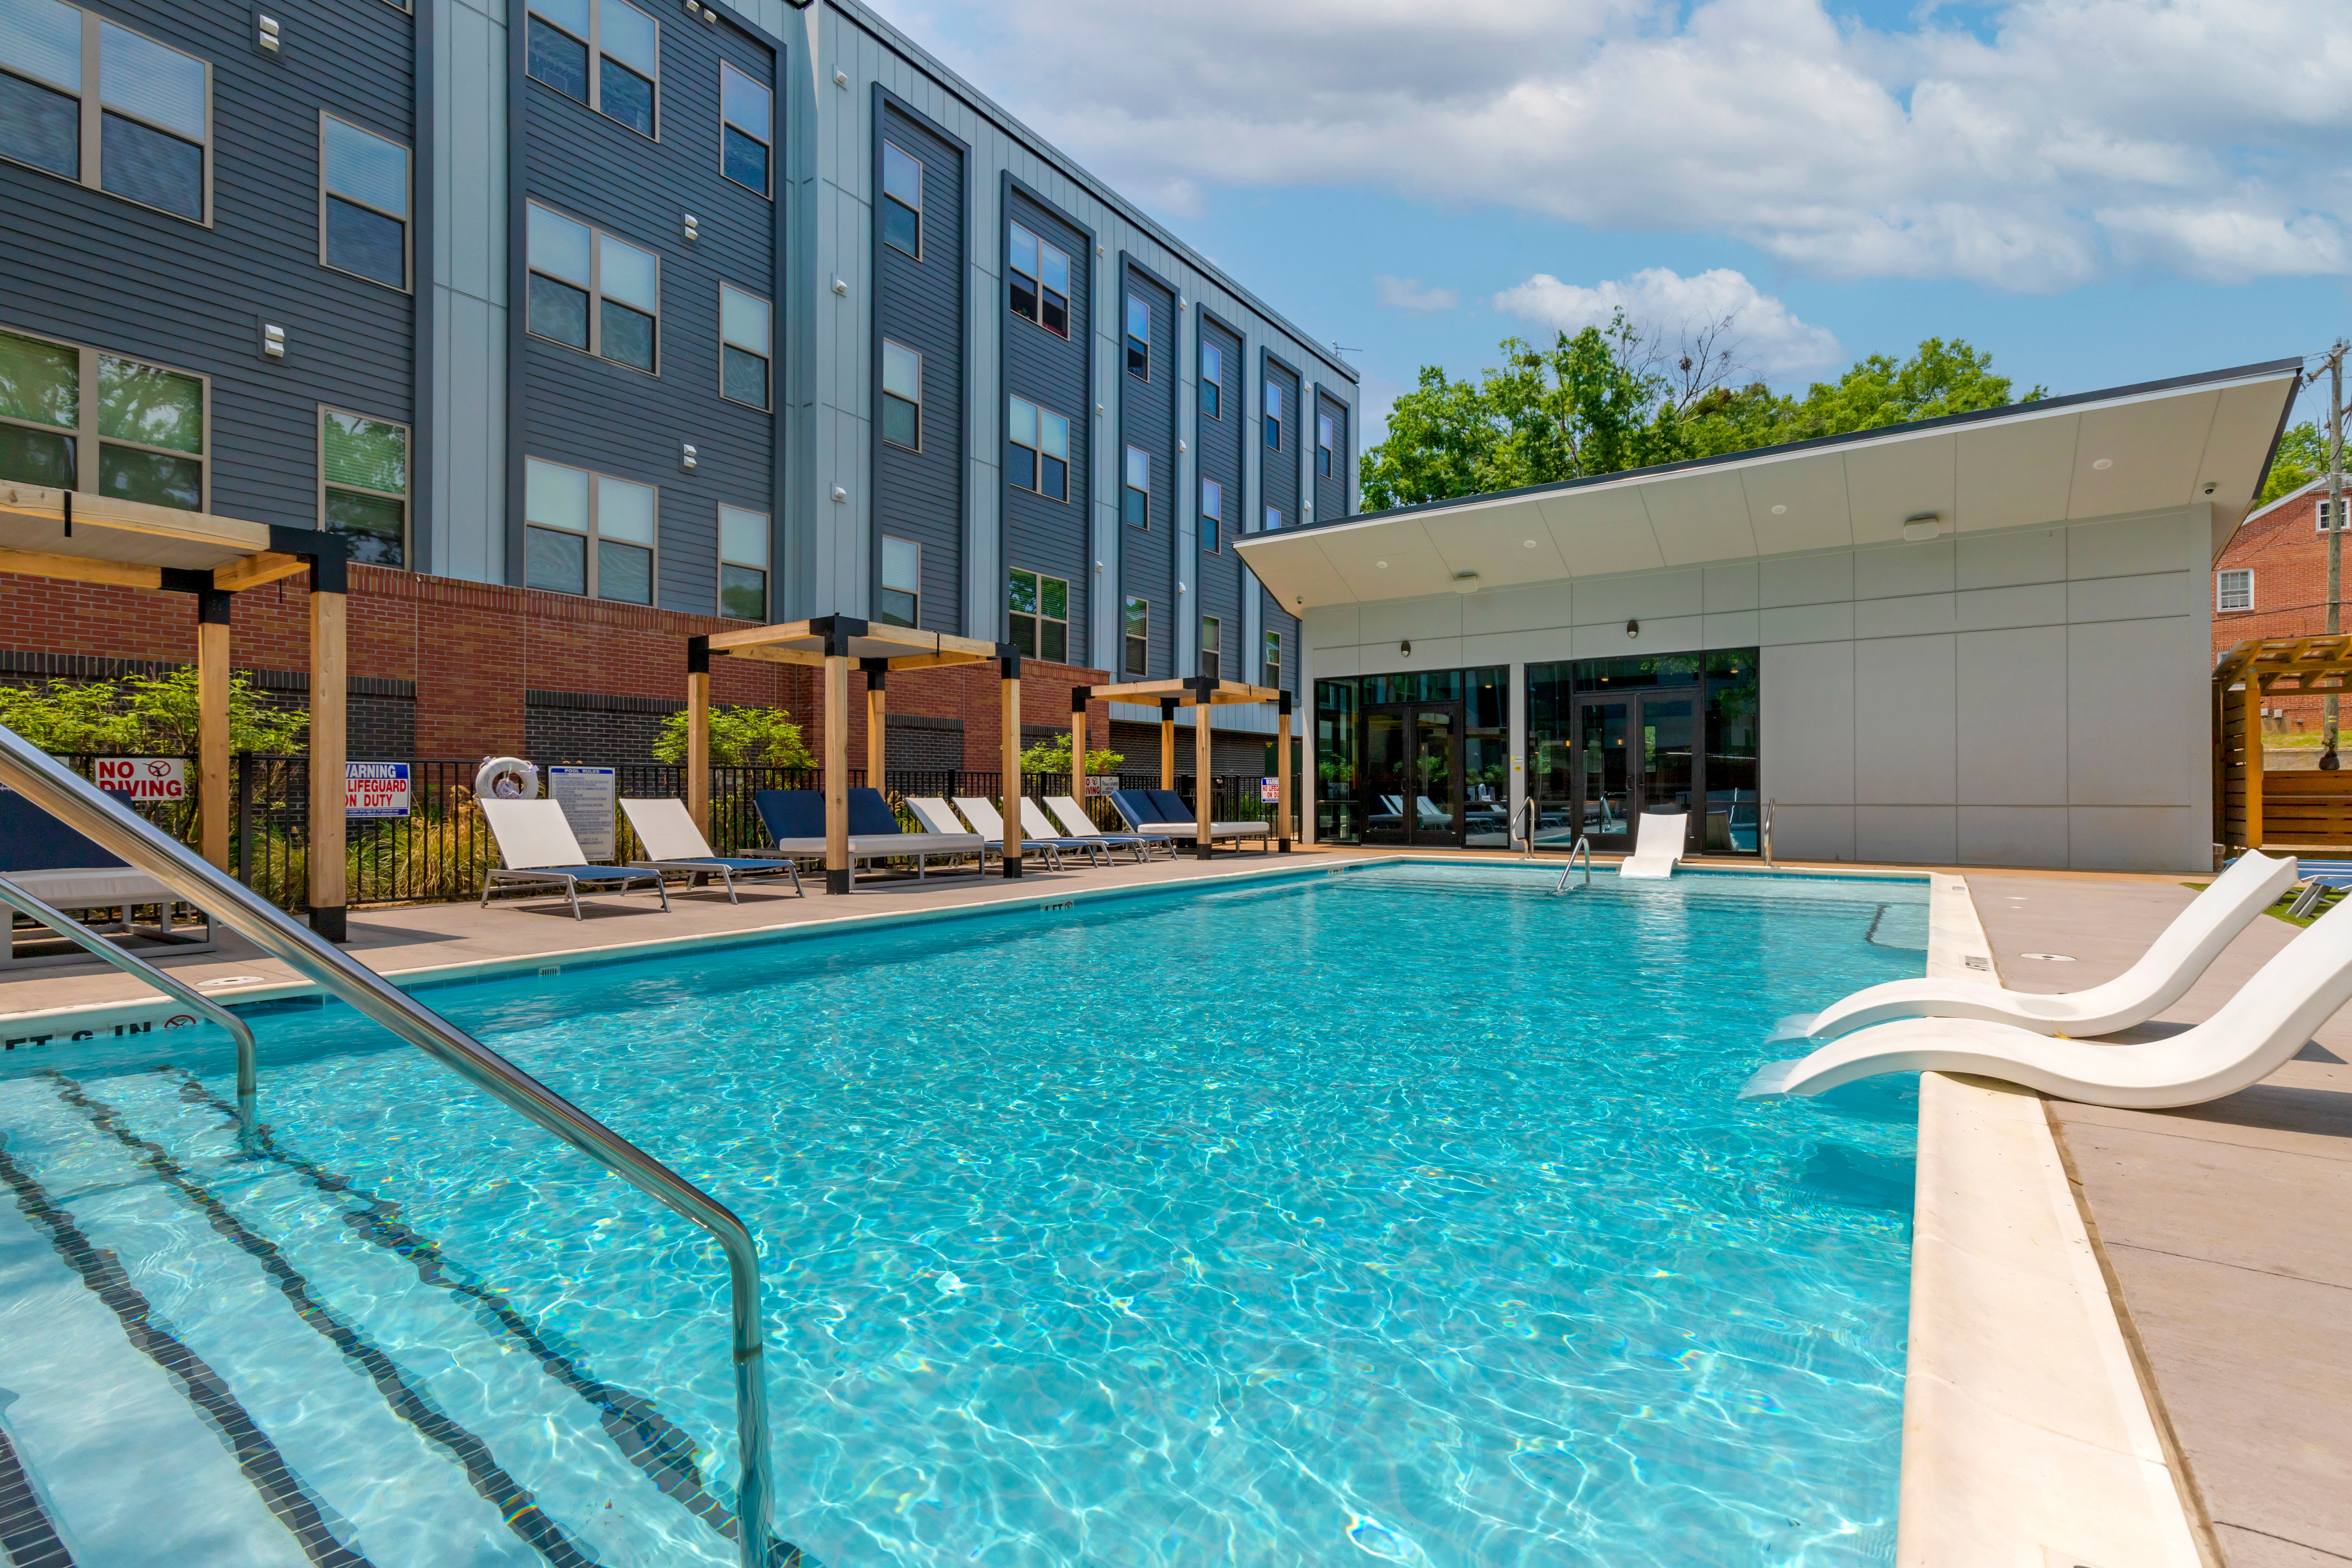 Swimming pool at UNCOMMON Raleigh in Raleigh, North Carolina